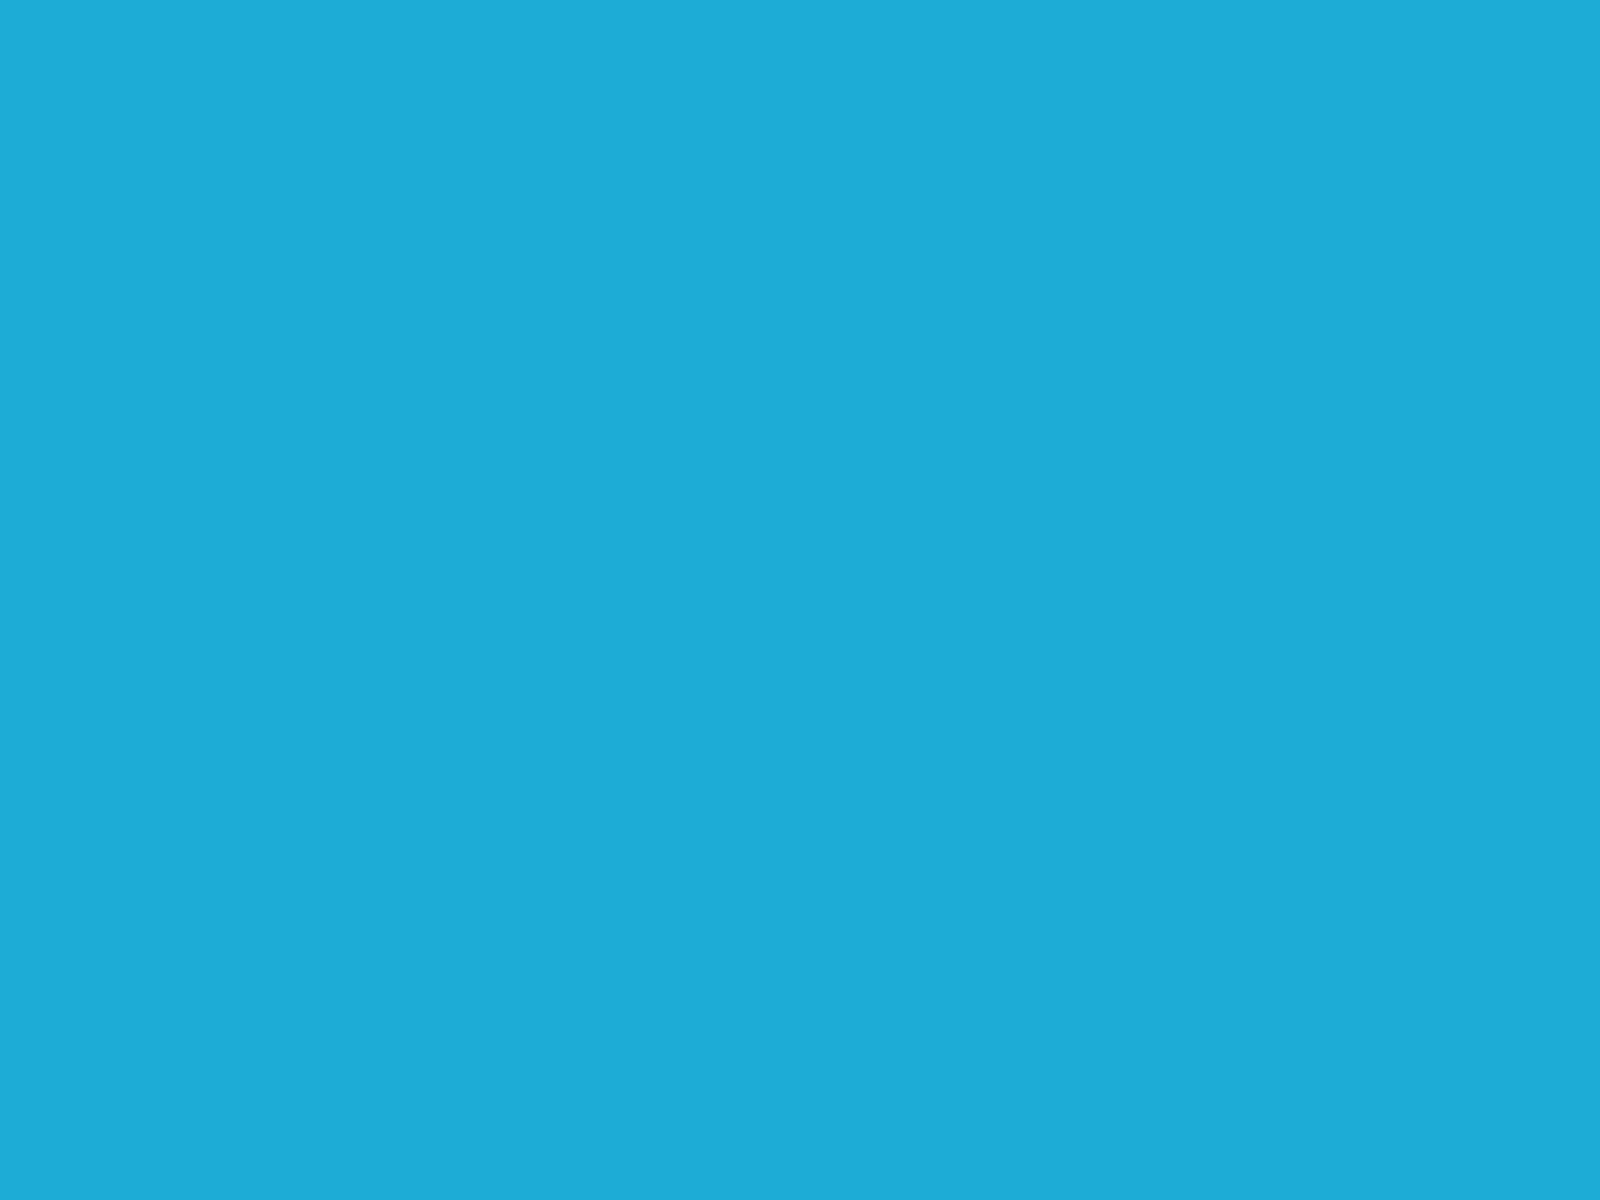 bright cerulean solid color background wallpaper httpbackgroundwallpapers cobright